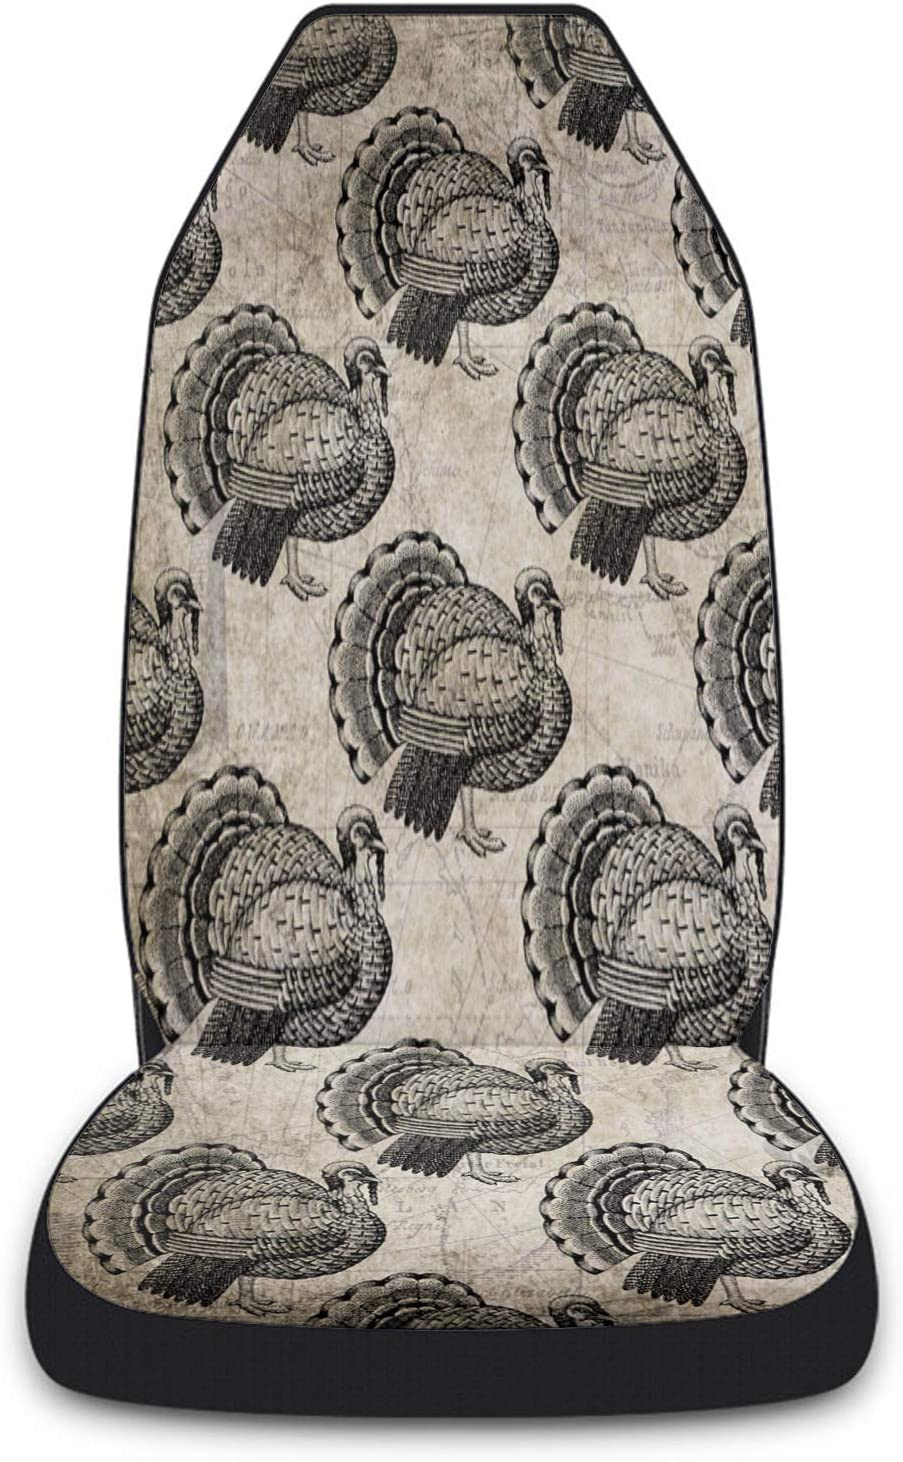 Popular product Cloud Dream Home Car Seat Turkey Max 57% OFF Covers Bird Front Thanksgiving